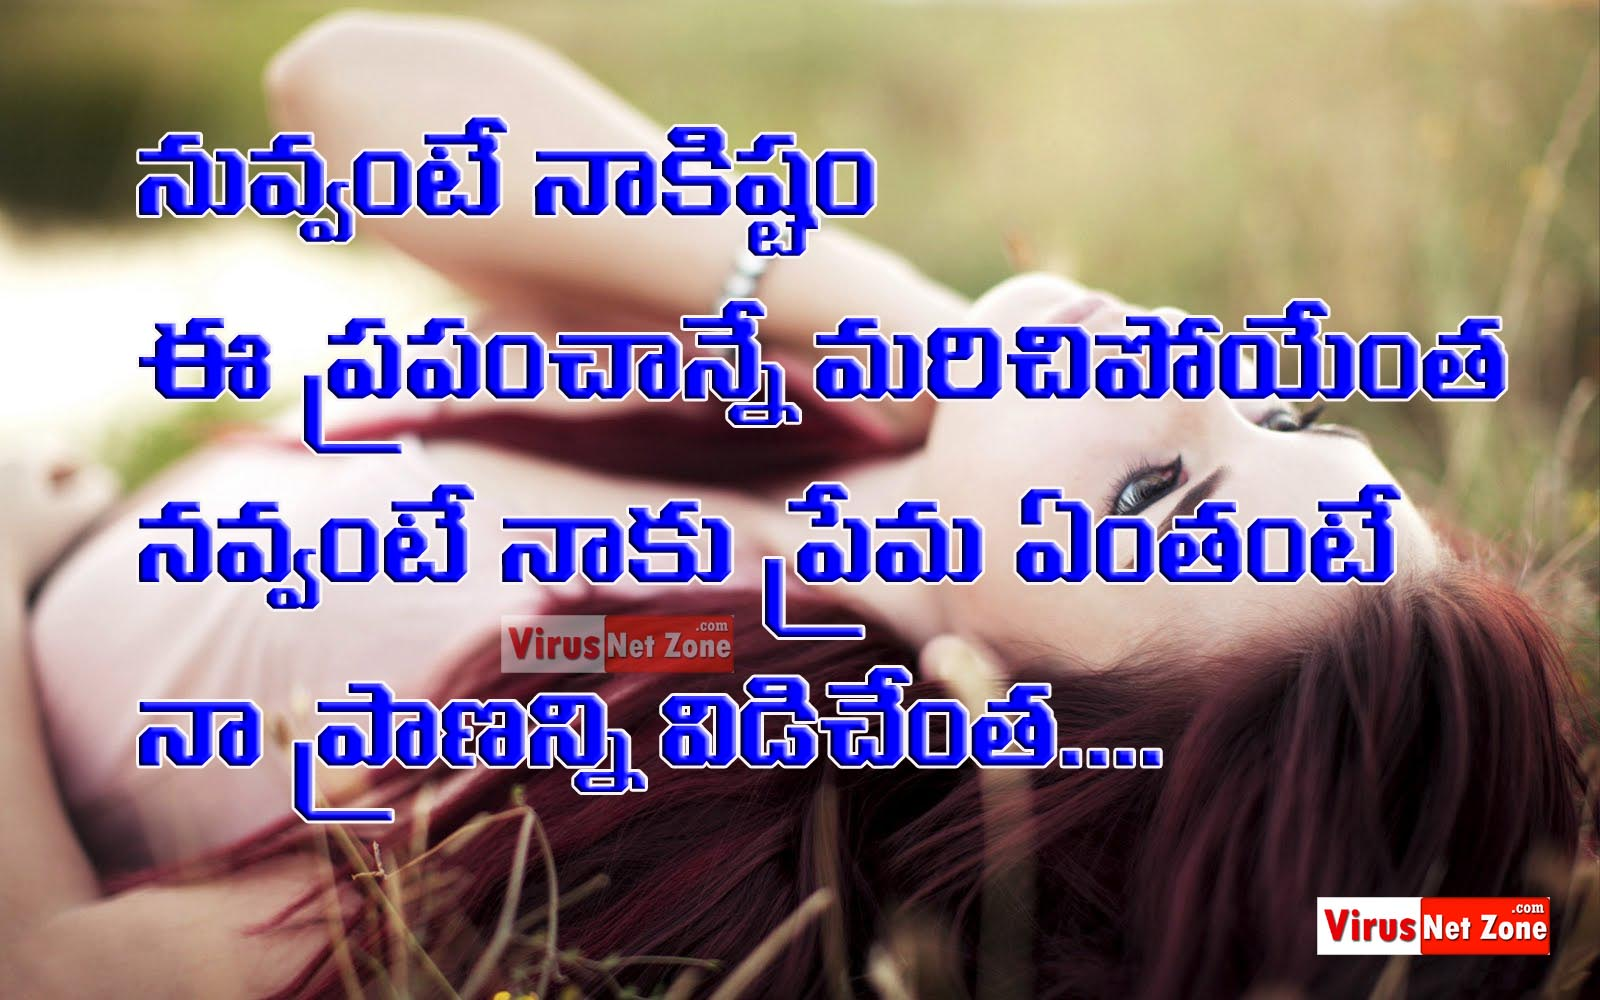 Telugu Love Quotes Classy Real Heart Touching Love Quotes Images In Telugu  Virus Net Zone